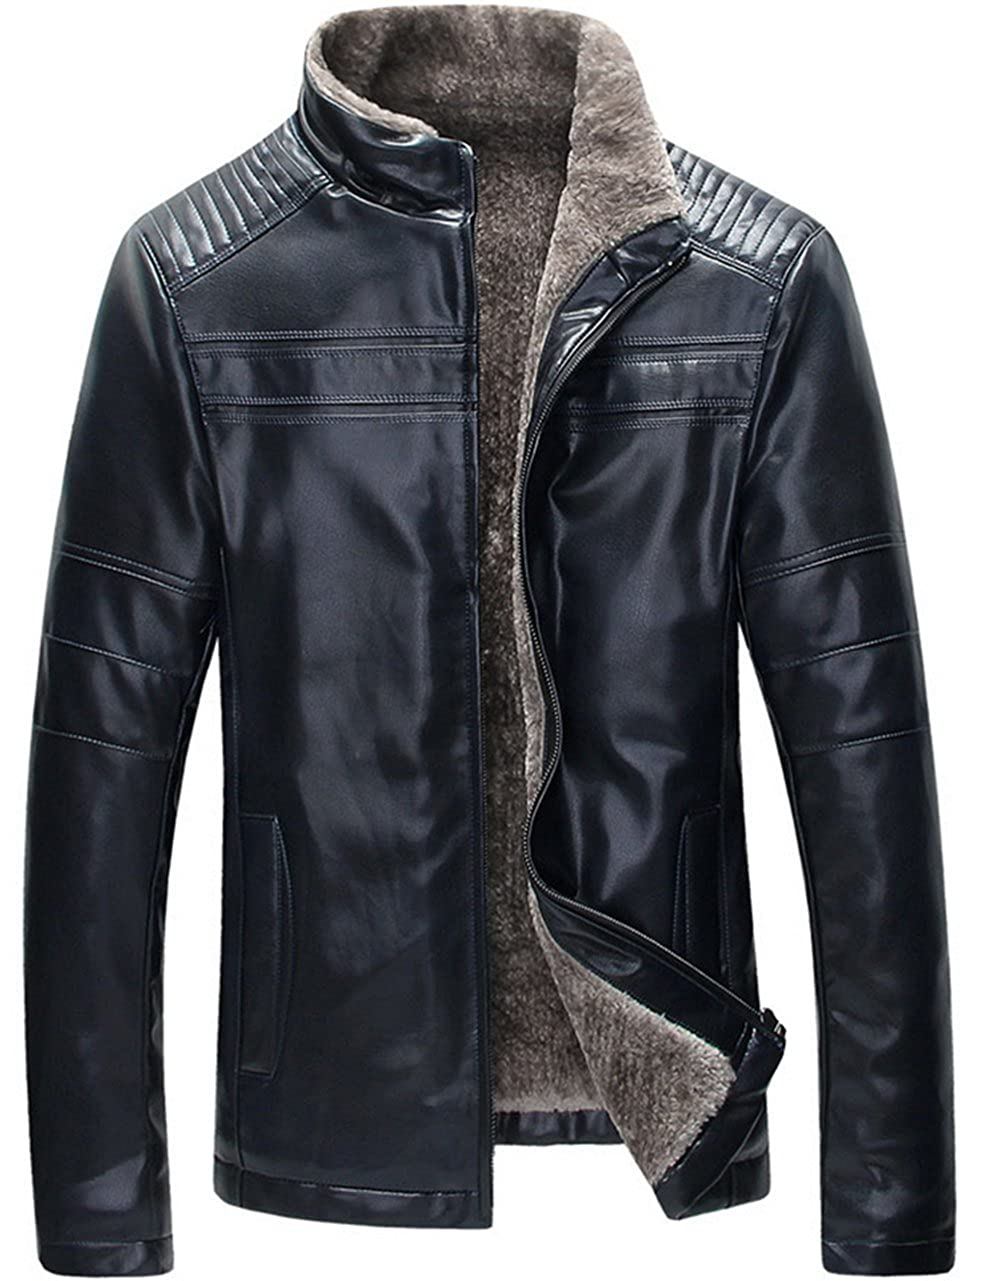 K3K New Mens Winter Stand Collar Sheep Skin Lamb Wool Lined Washed Leather Jacket